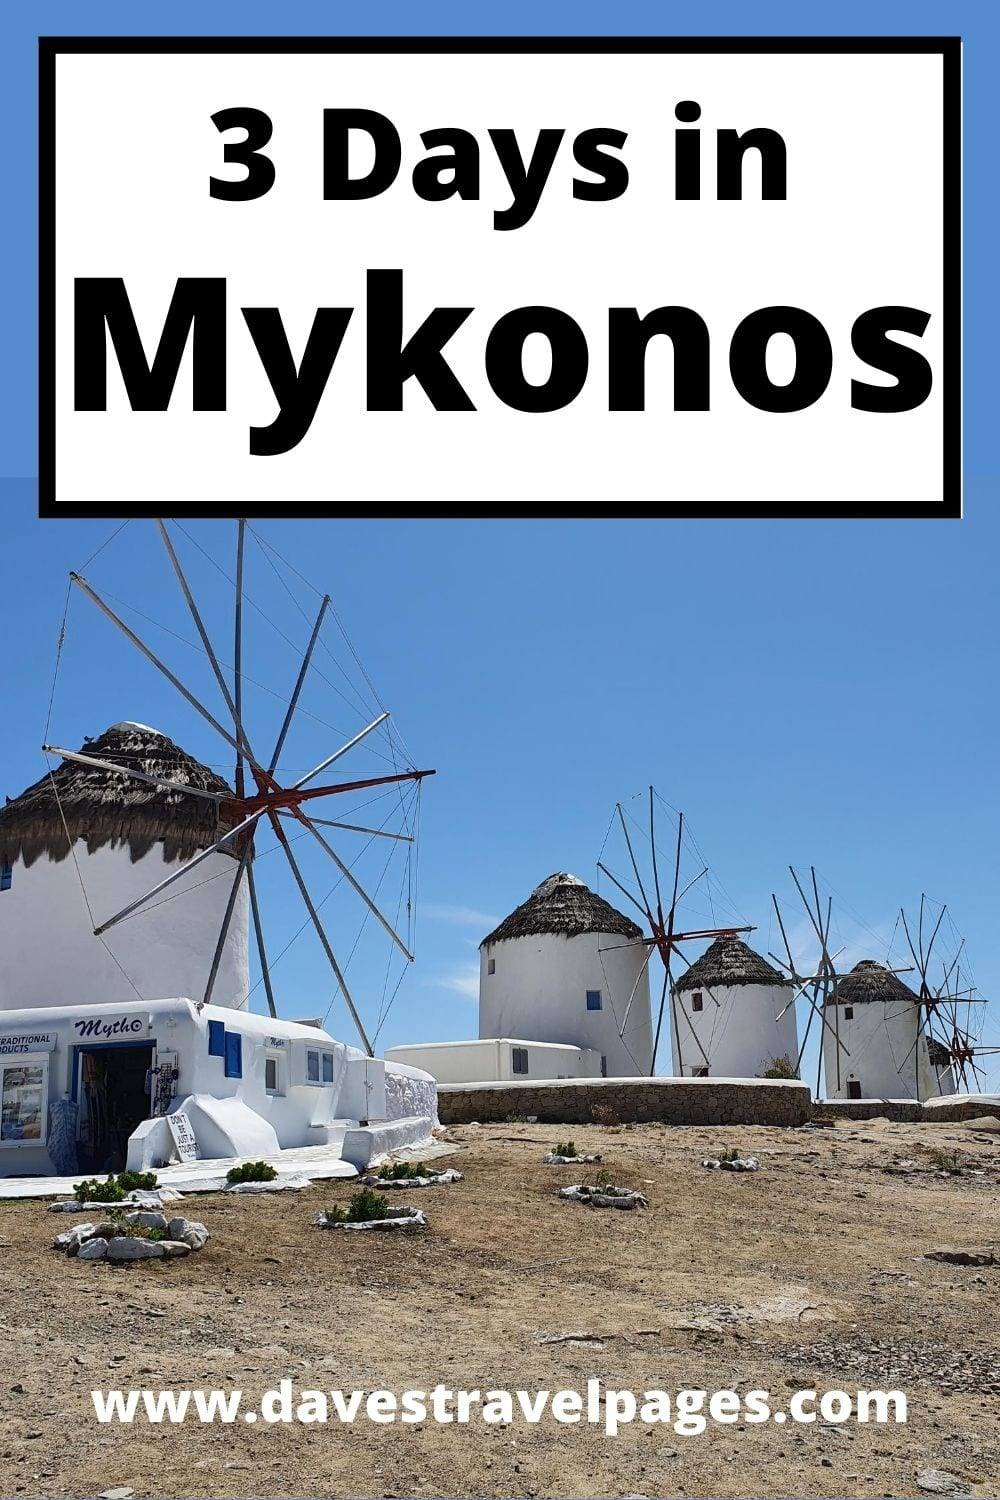 3 Day in Mykonos - Itinerary and Travel Guide